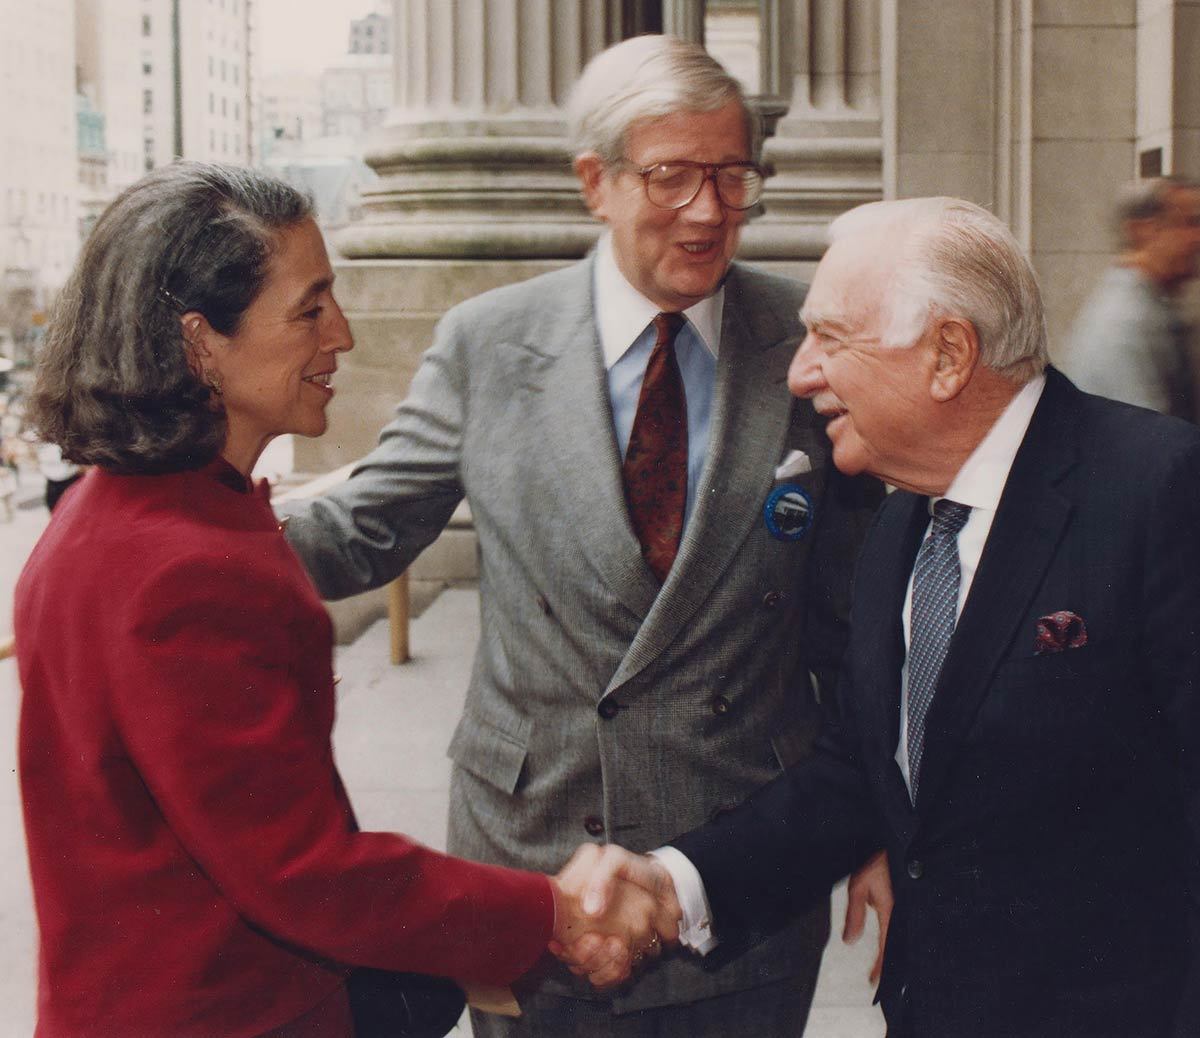 Ruth Messinger; William Luers, then-head of the Metropolitan Museum of Art in New York; and legendary newscaster Walter Cronkite in the 1980s.